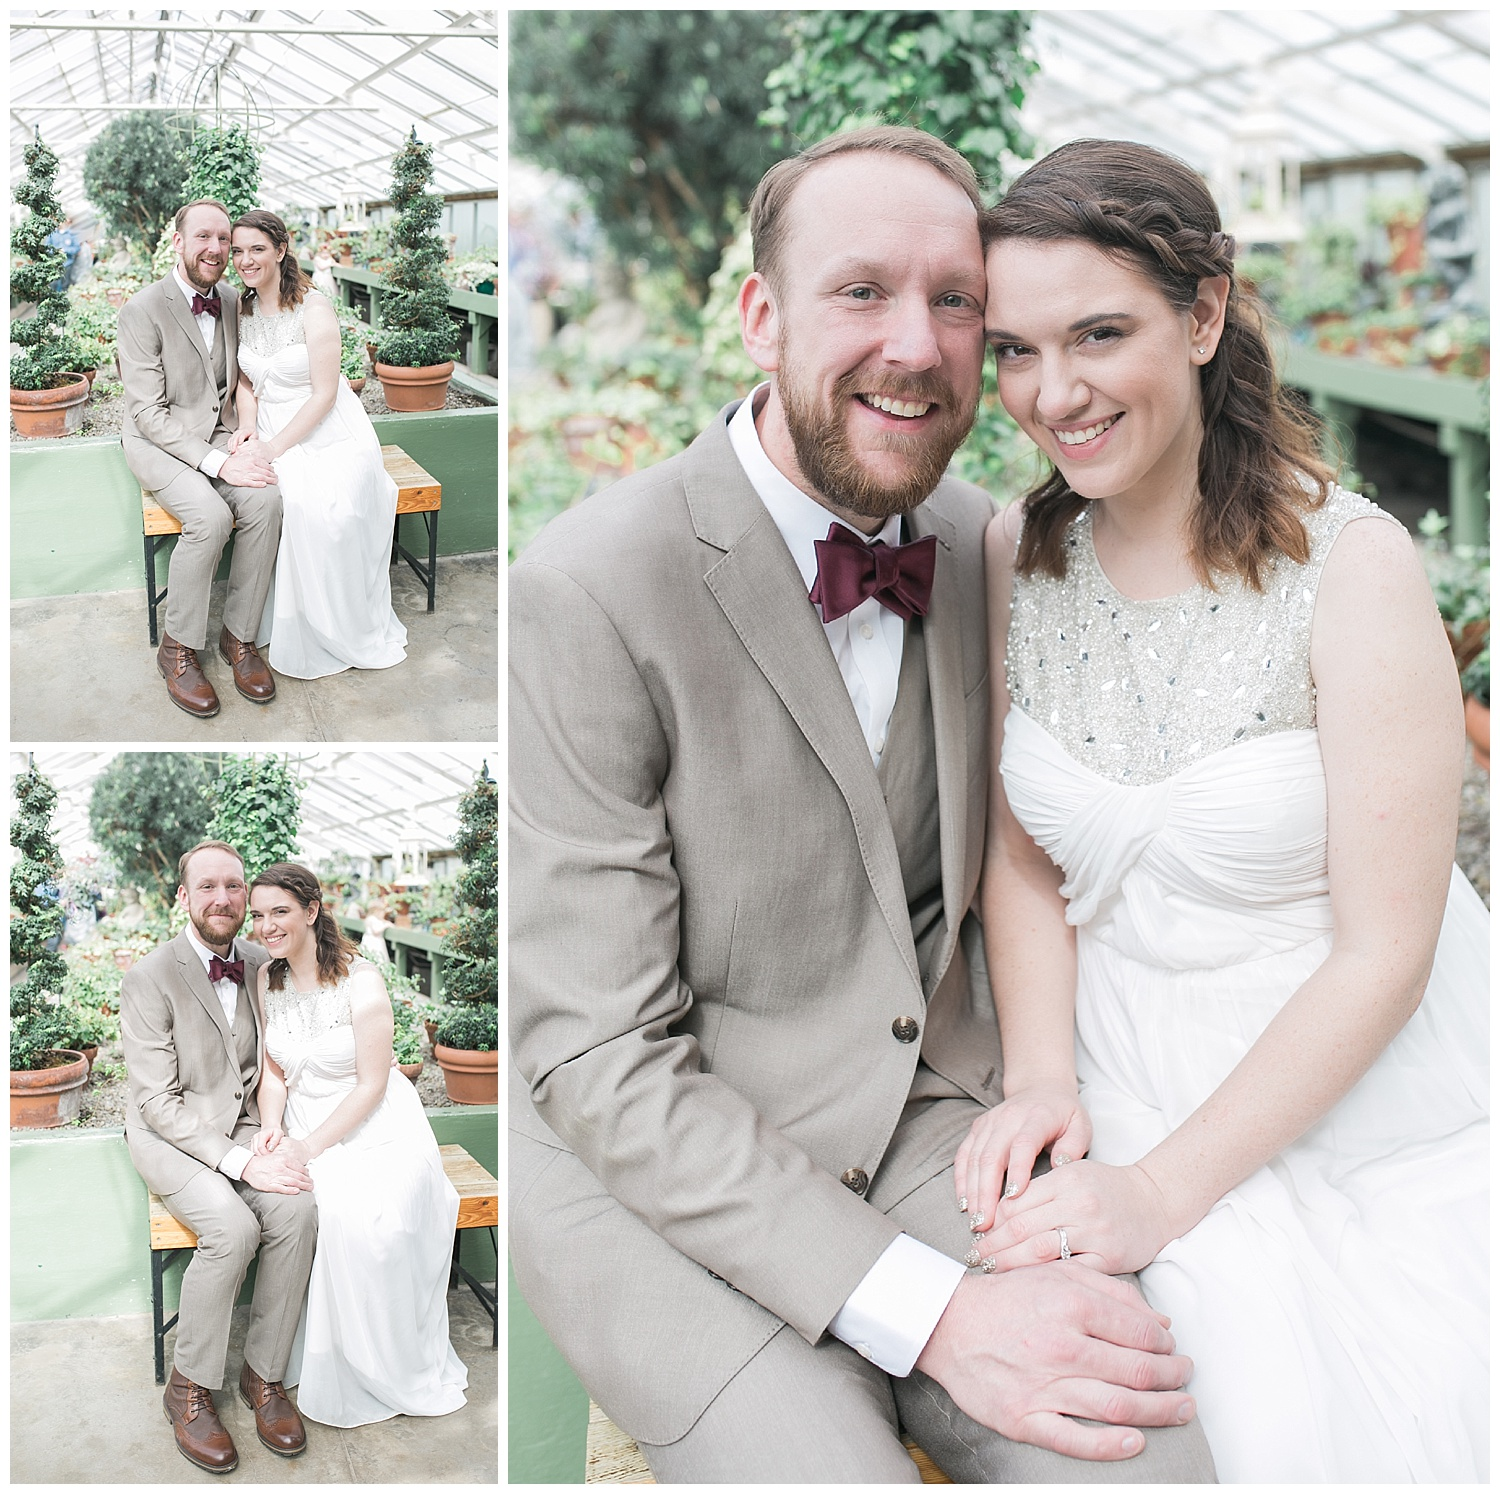 Buffalo Botanical gardens wedding - Buffalo NY Lass and Beau 39.jpg